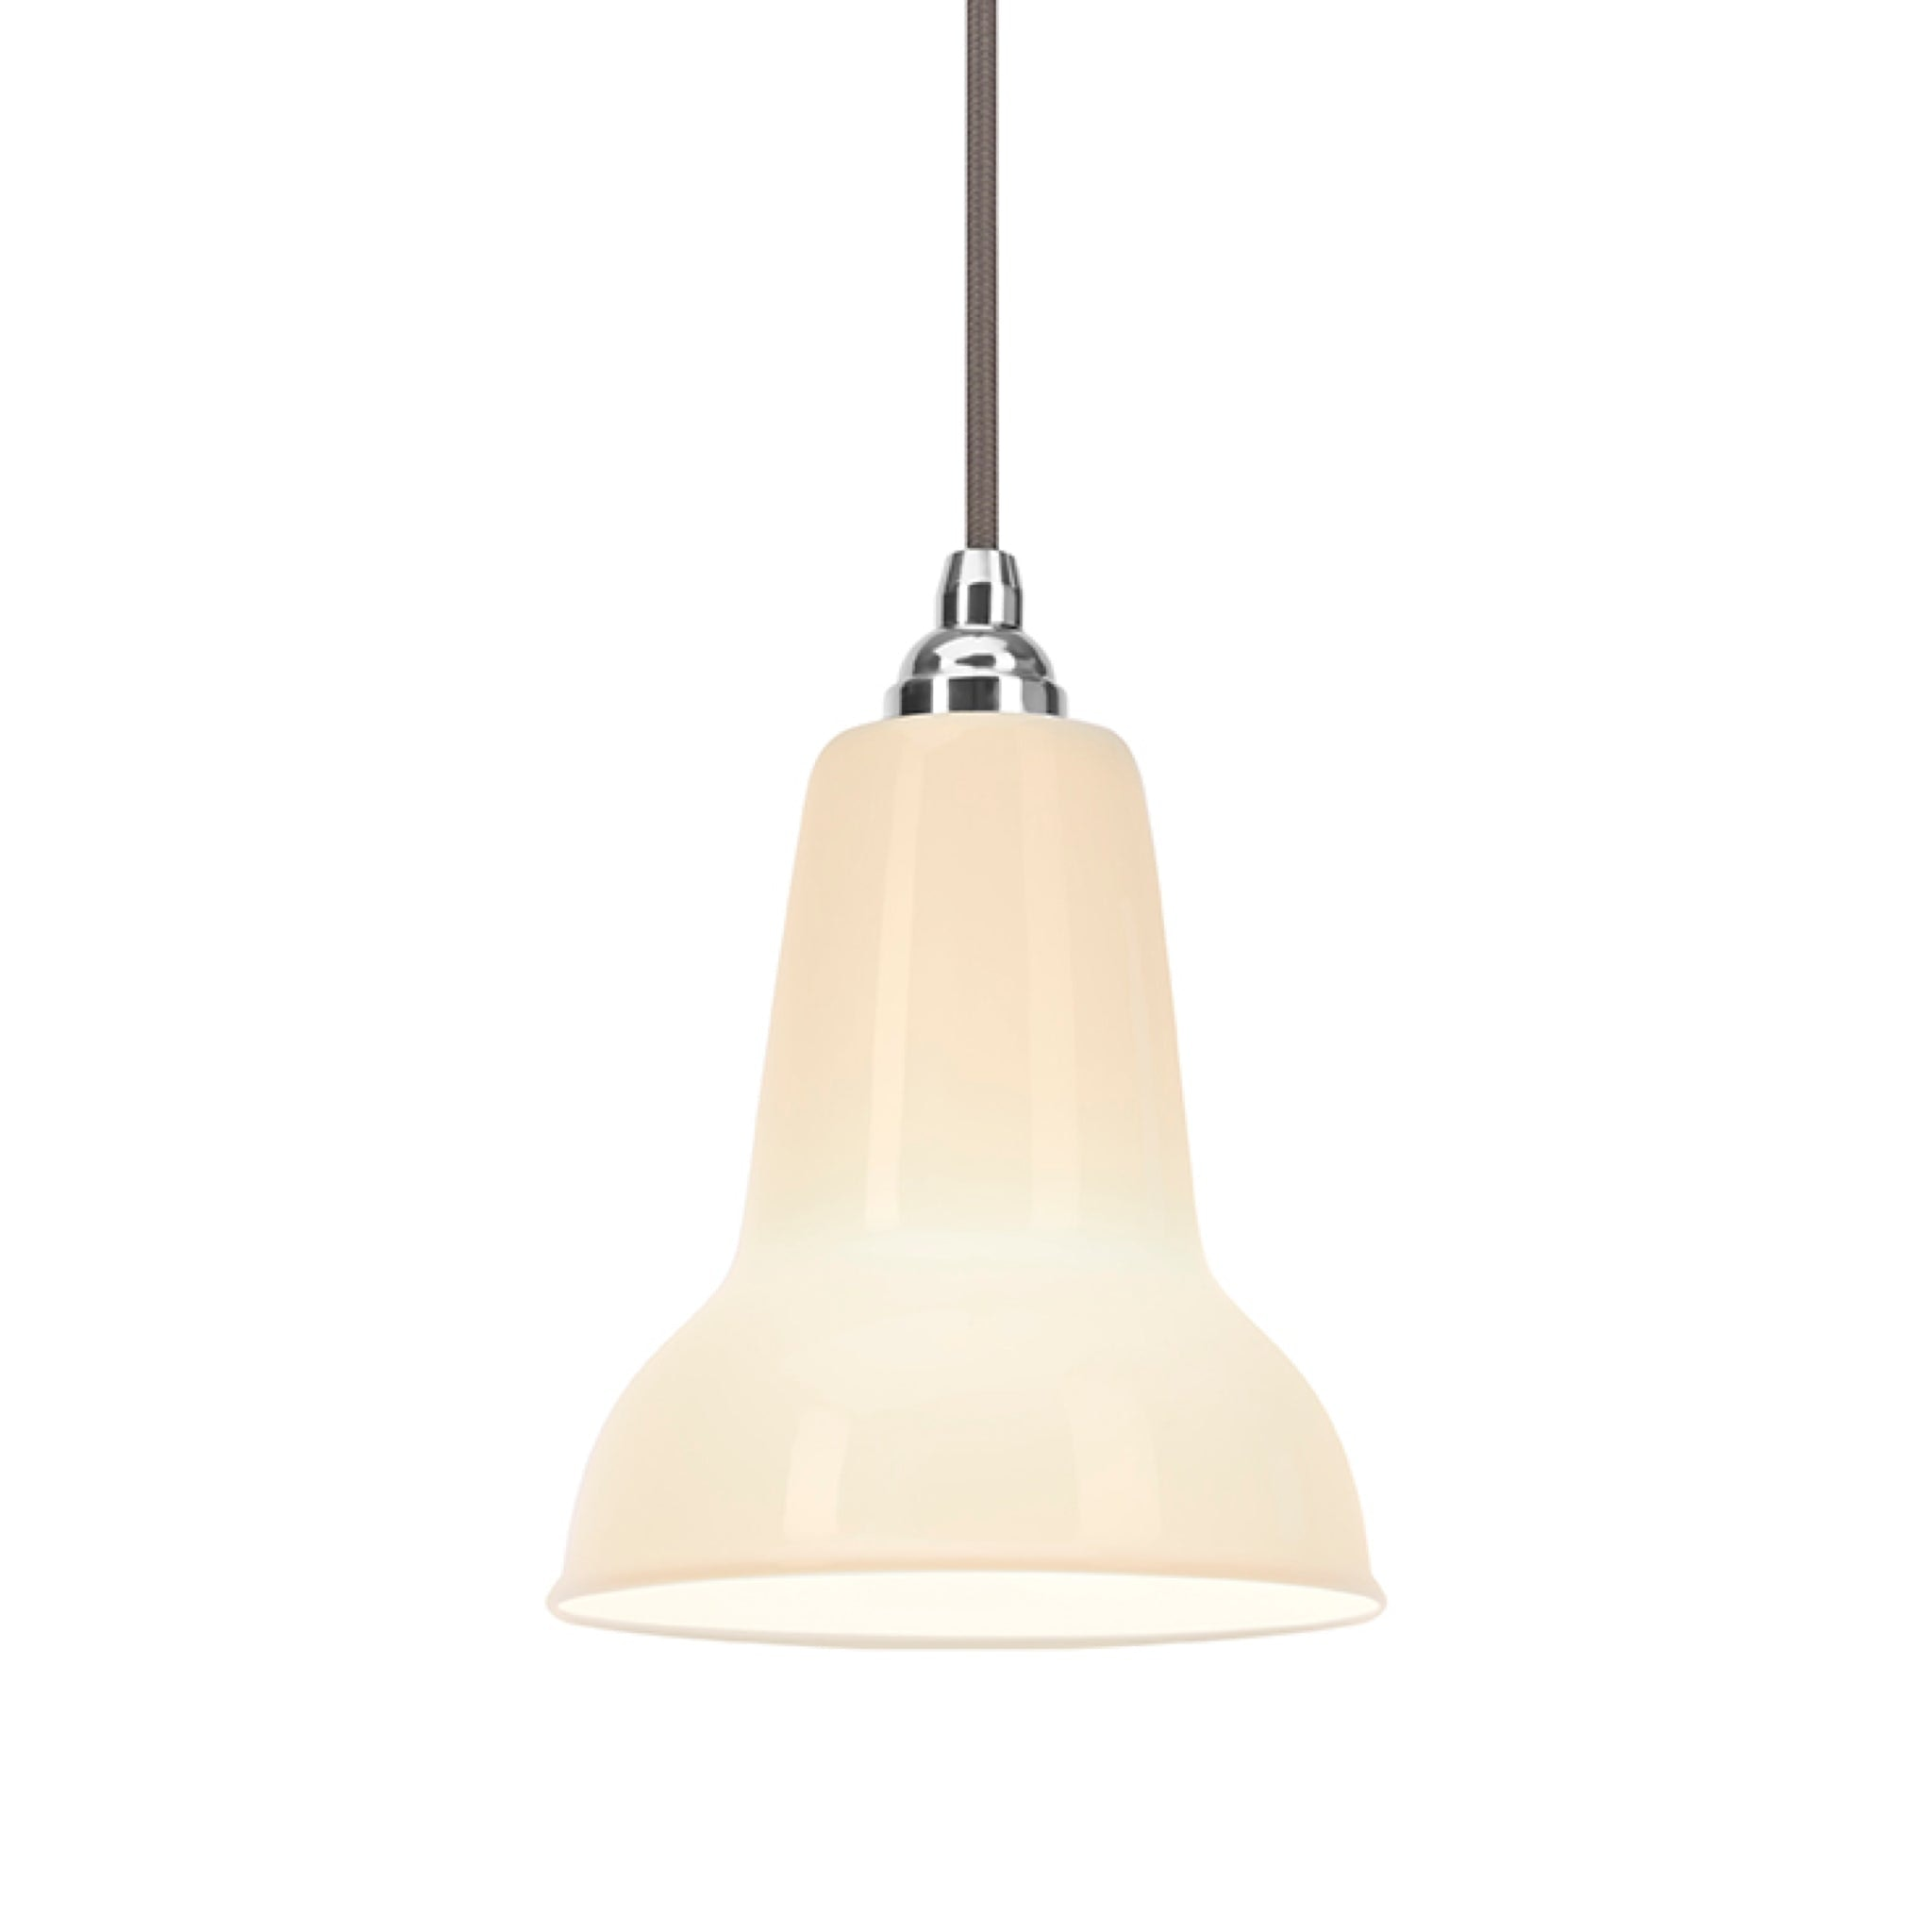 Original 1227 Mini Ceramic Pendant by Anglepoise